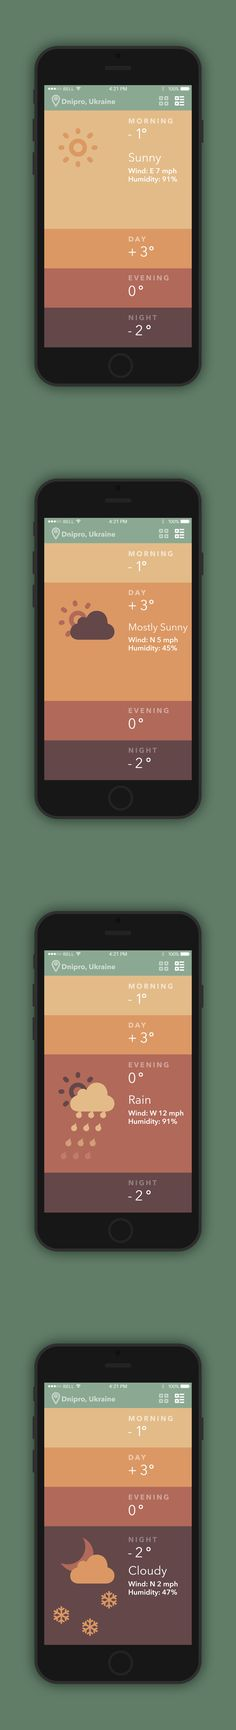 Dribbble - Weather_App_Design.png by Sergey Valiukh